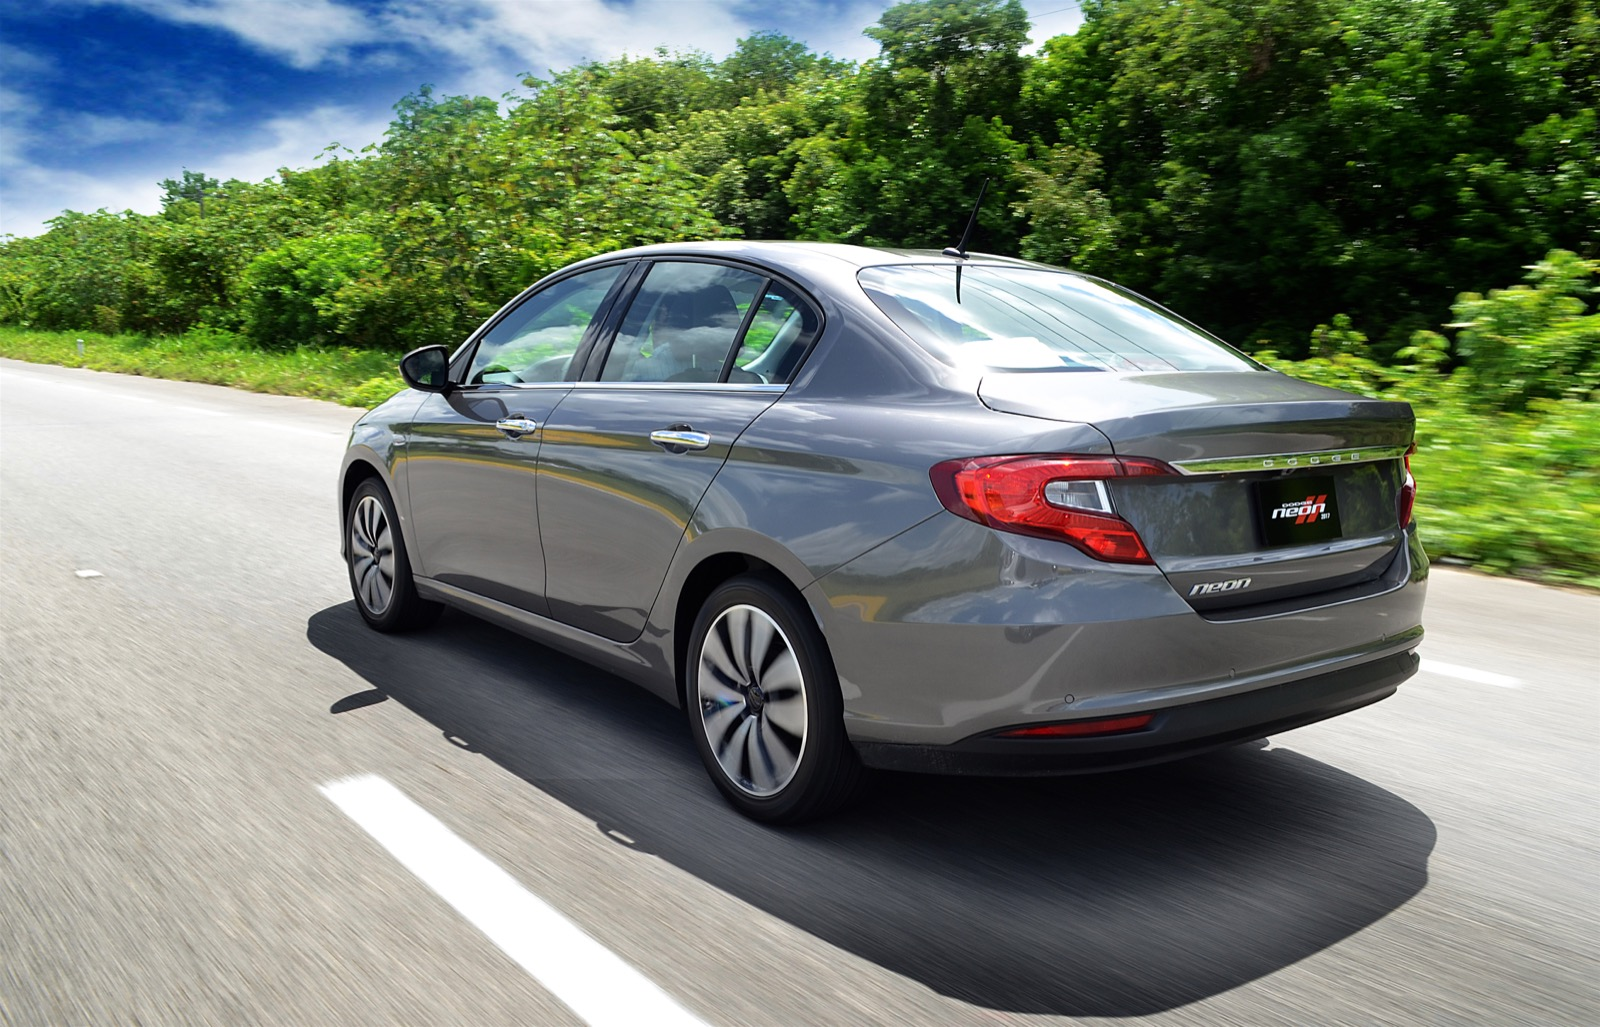 The 2017 Dodge Neon Is Basically A Rebadged Fiat Tipo Sedan Which Sold In Limited Markets Like Middle East And Mexico Only Difference With Its